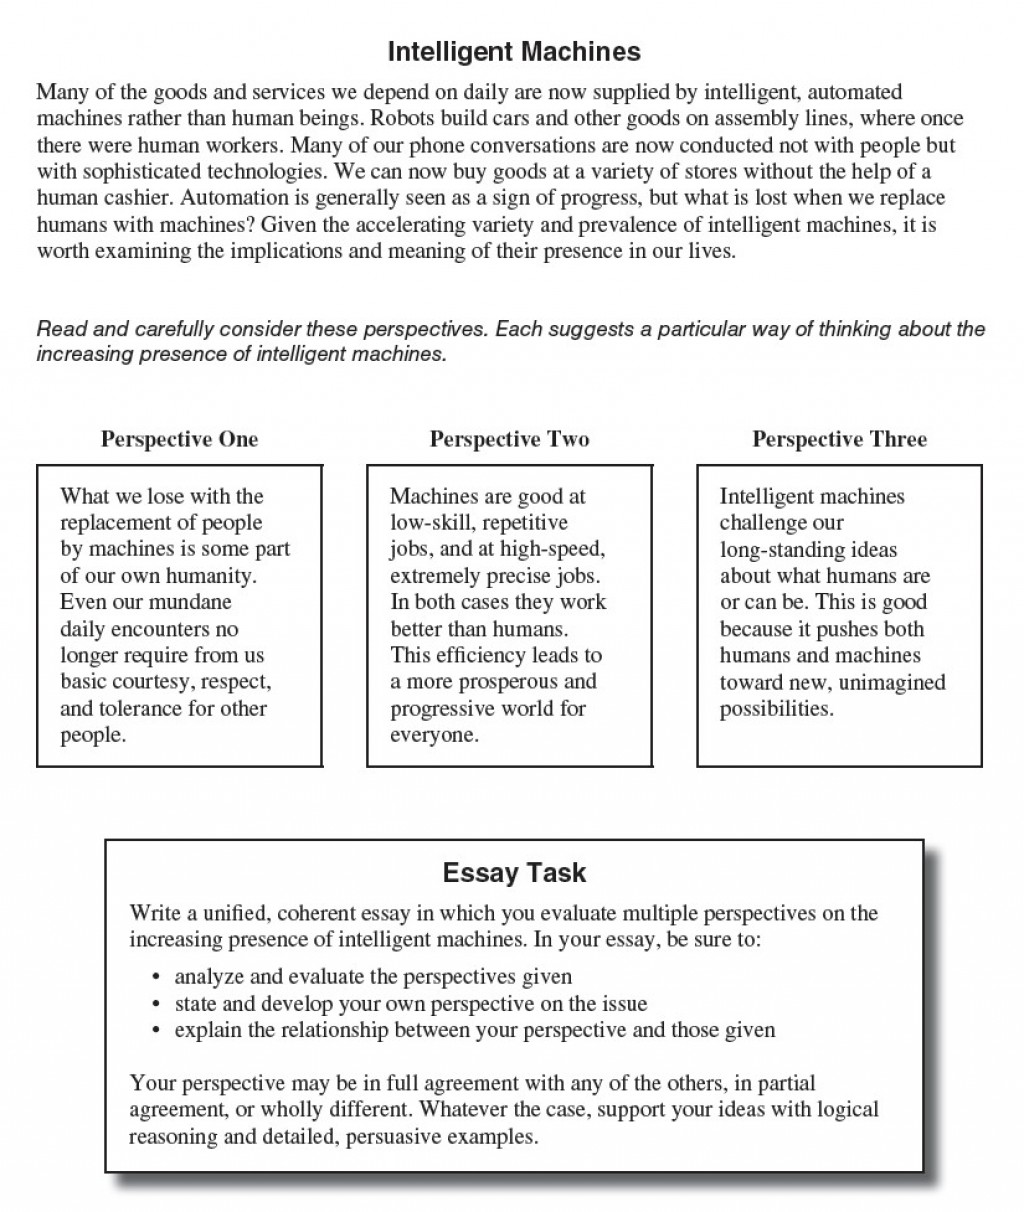 002 Act Prompt Essay Fearsome Format Public Health 2017 Large